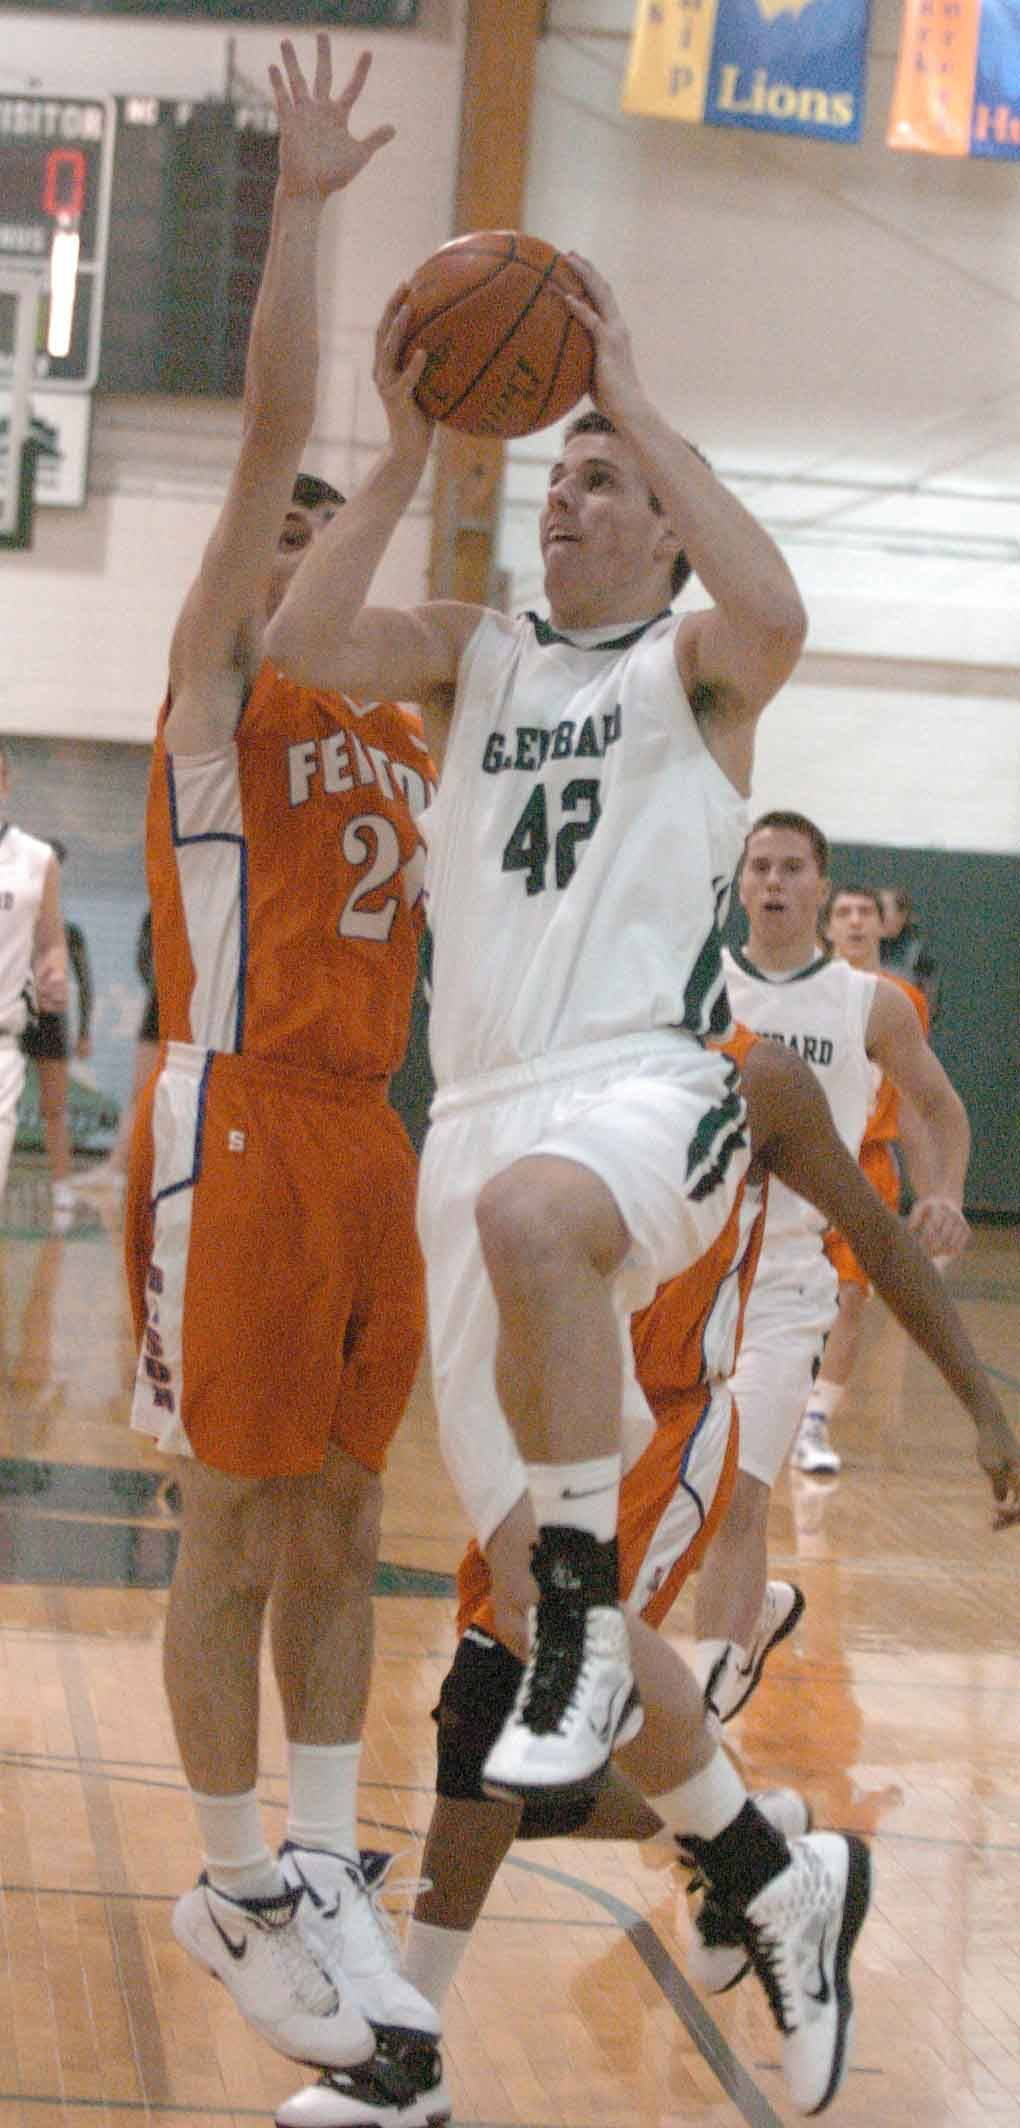 Michael Mache of Glenbard West goes up for a shot during the Fenton at Glenbard West boys basketball game Tuesday.